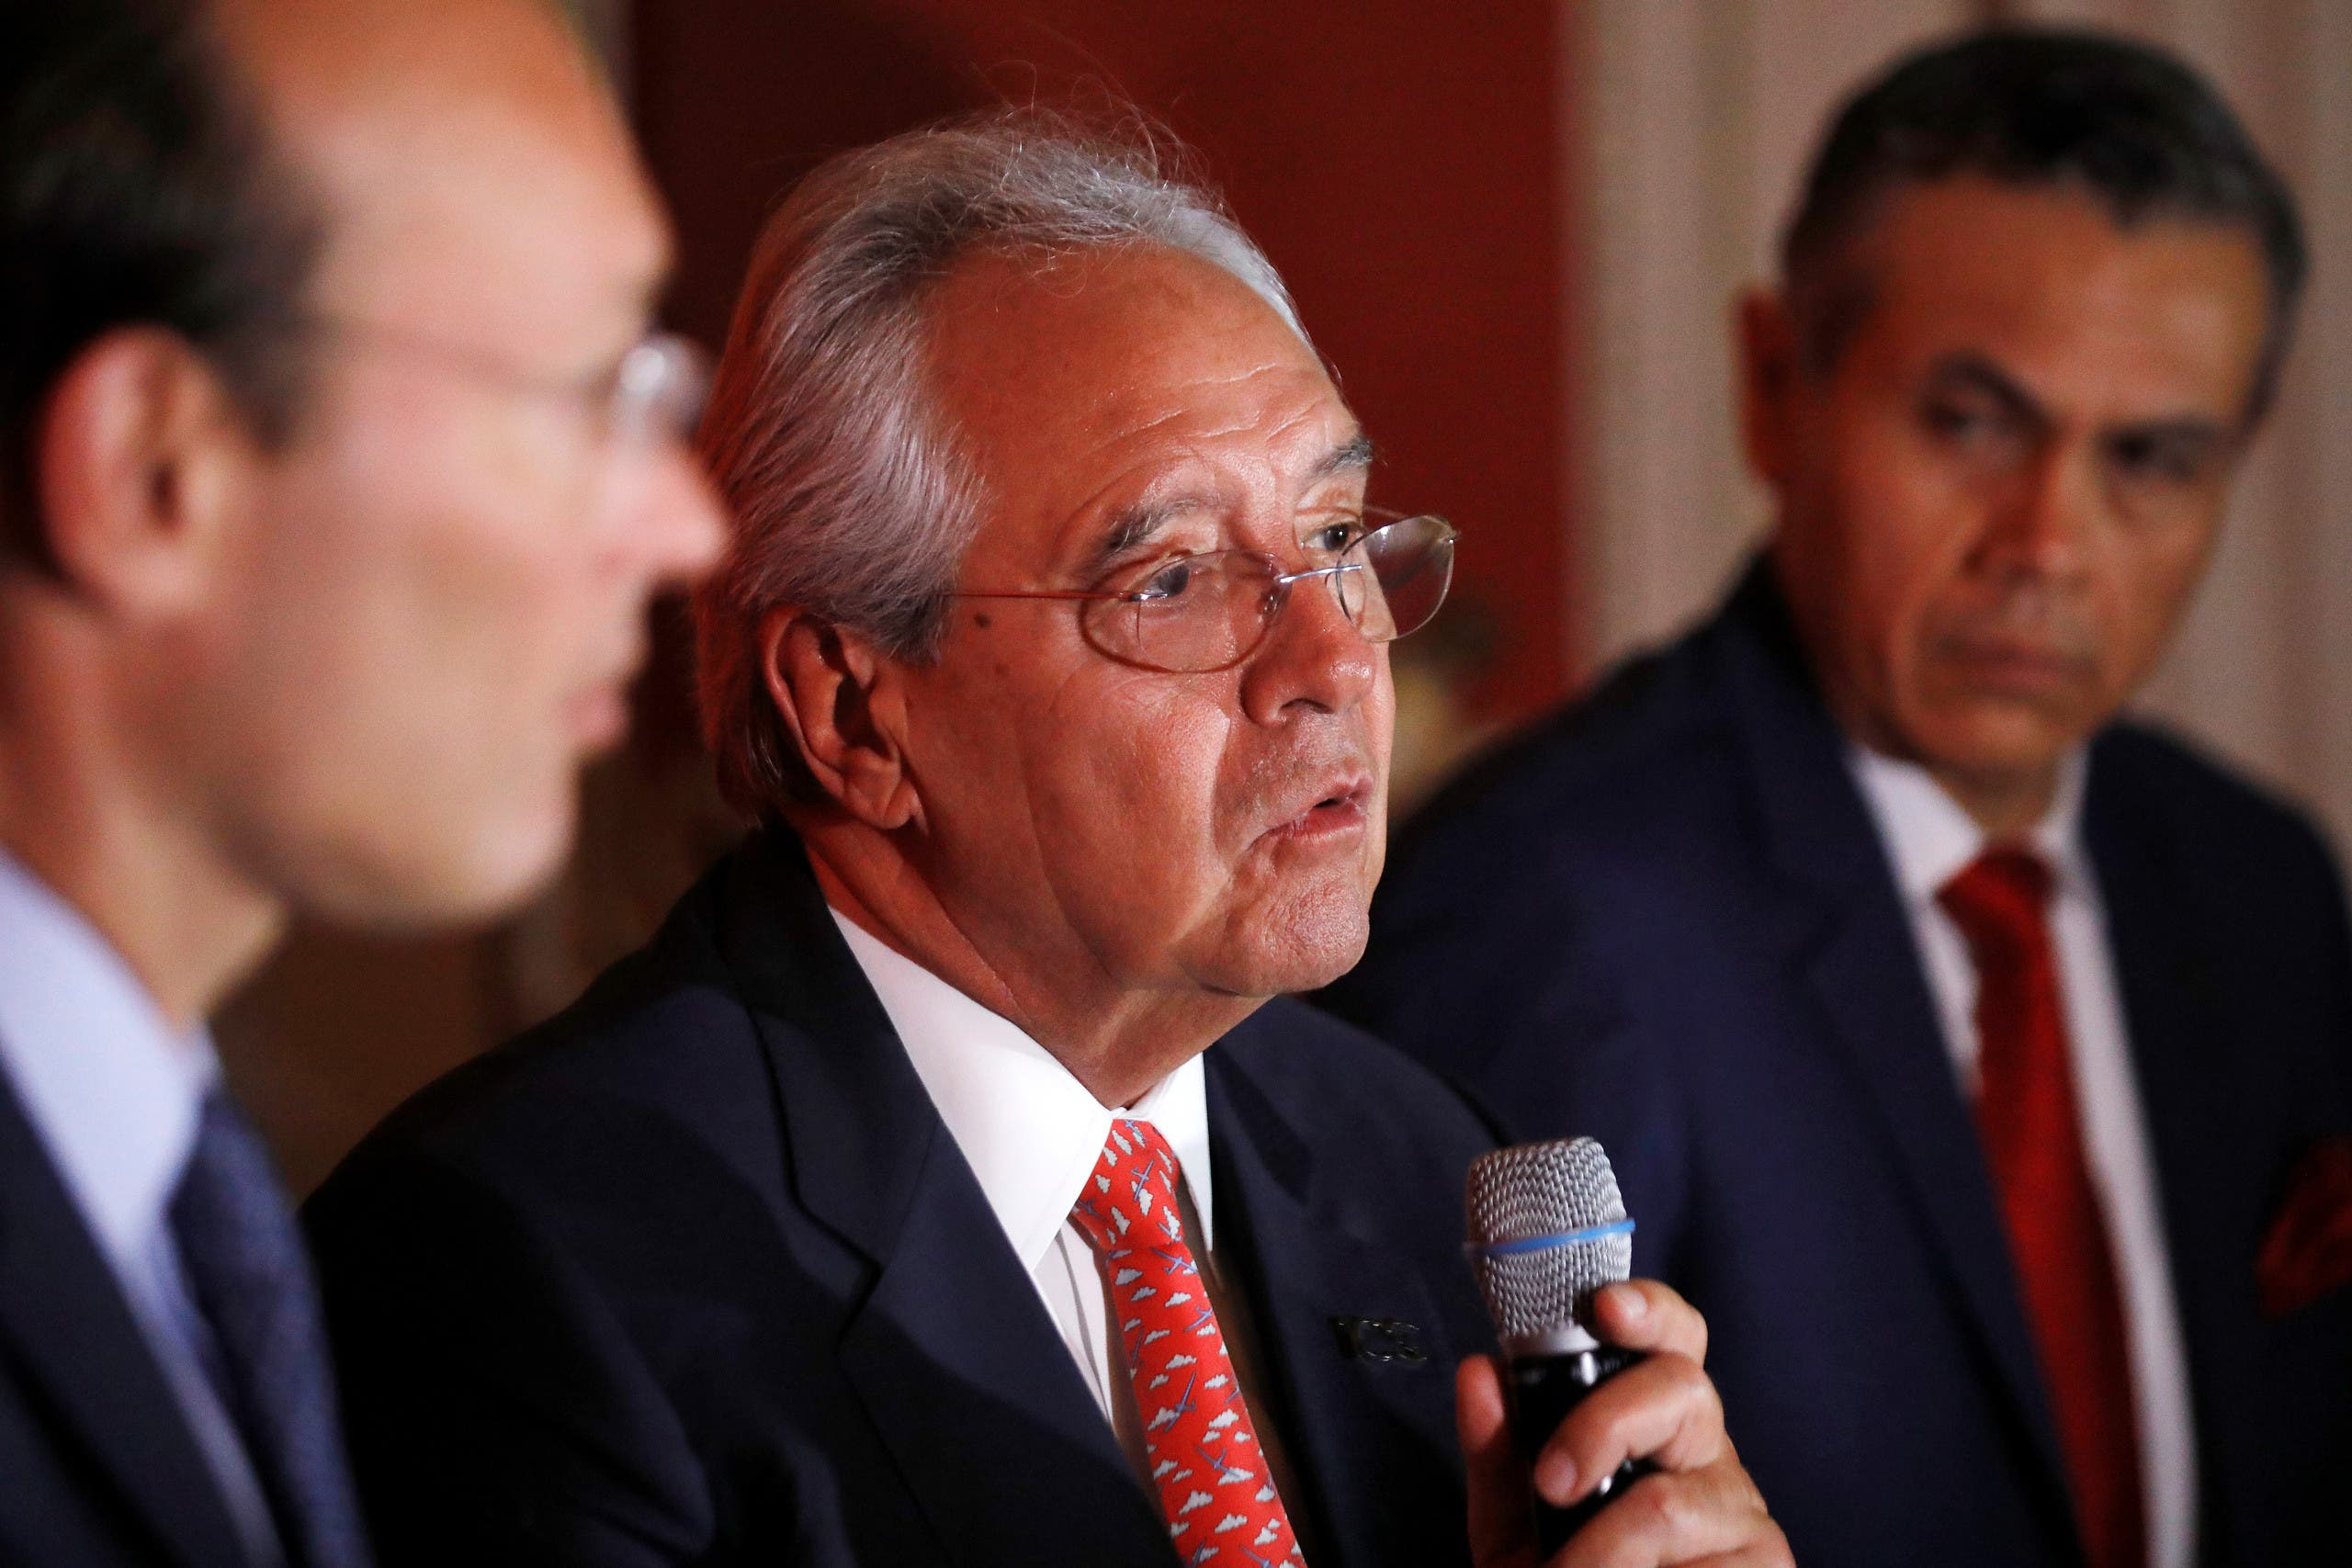 Roberto Kriete, chairman of Avianca Holdings participates in a news conference in San Salvador, El Salvador. (File Photo: Reuters)